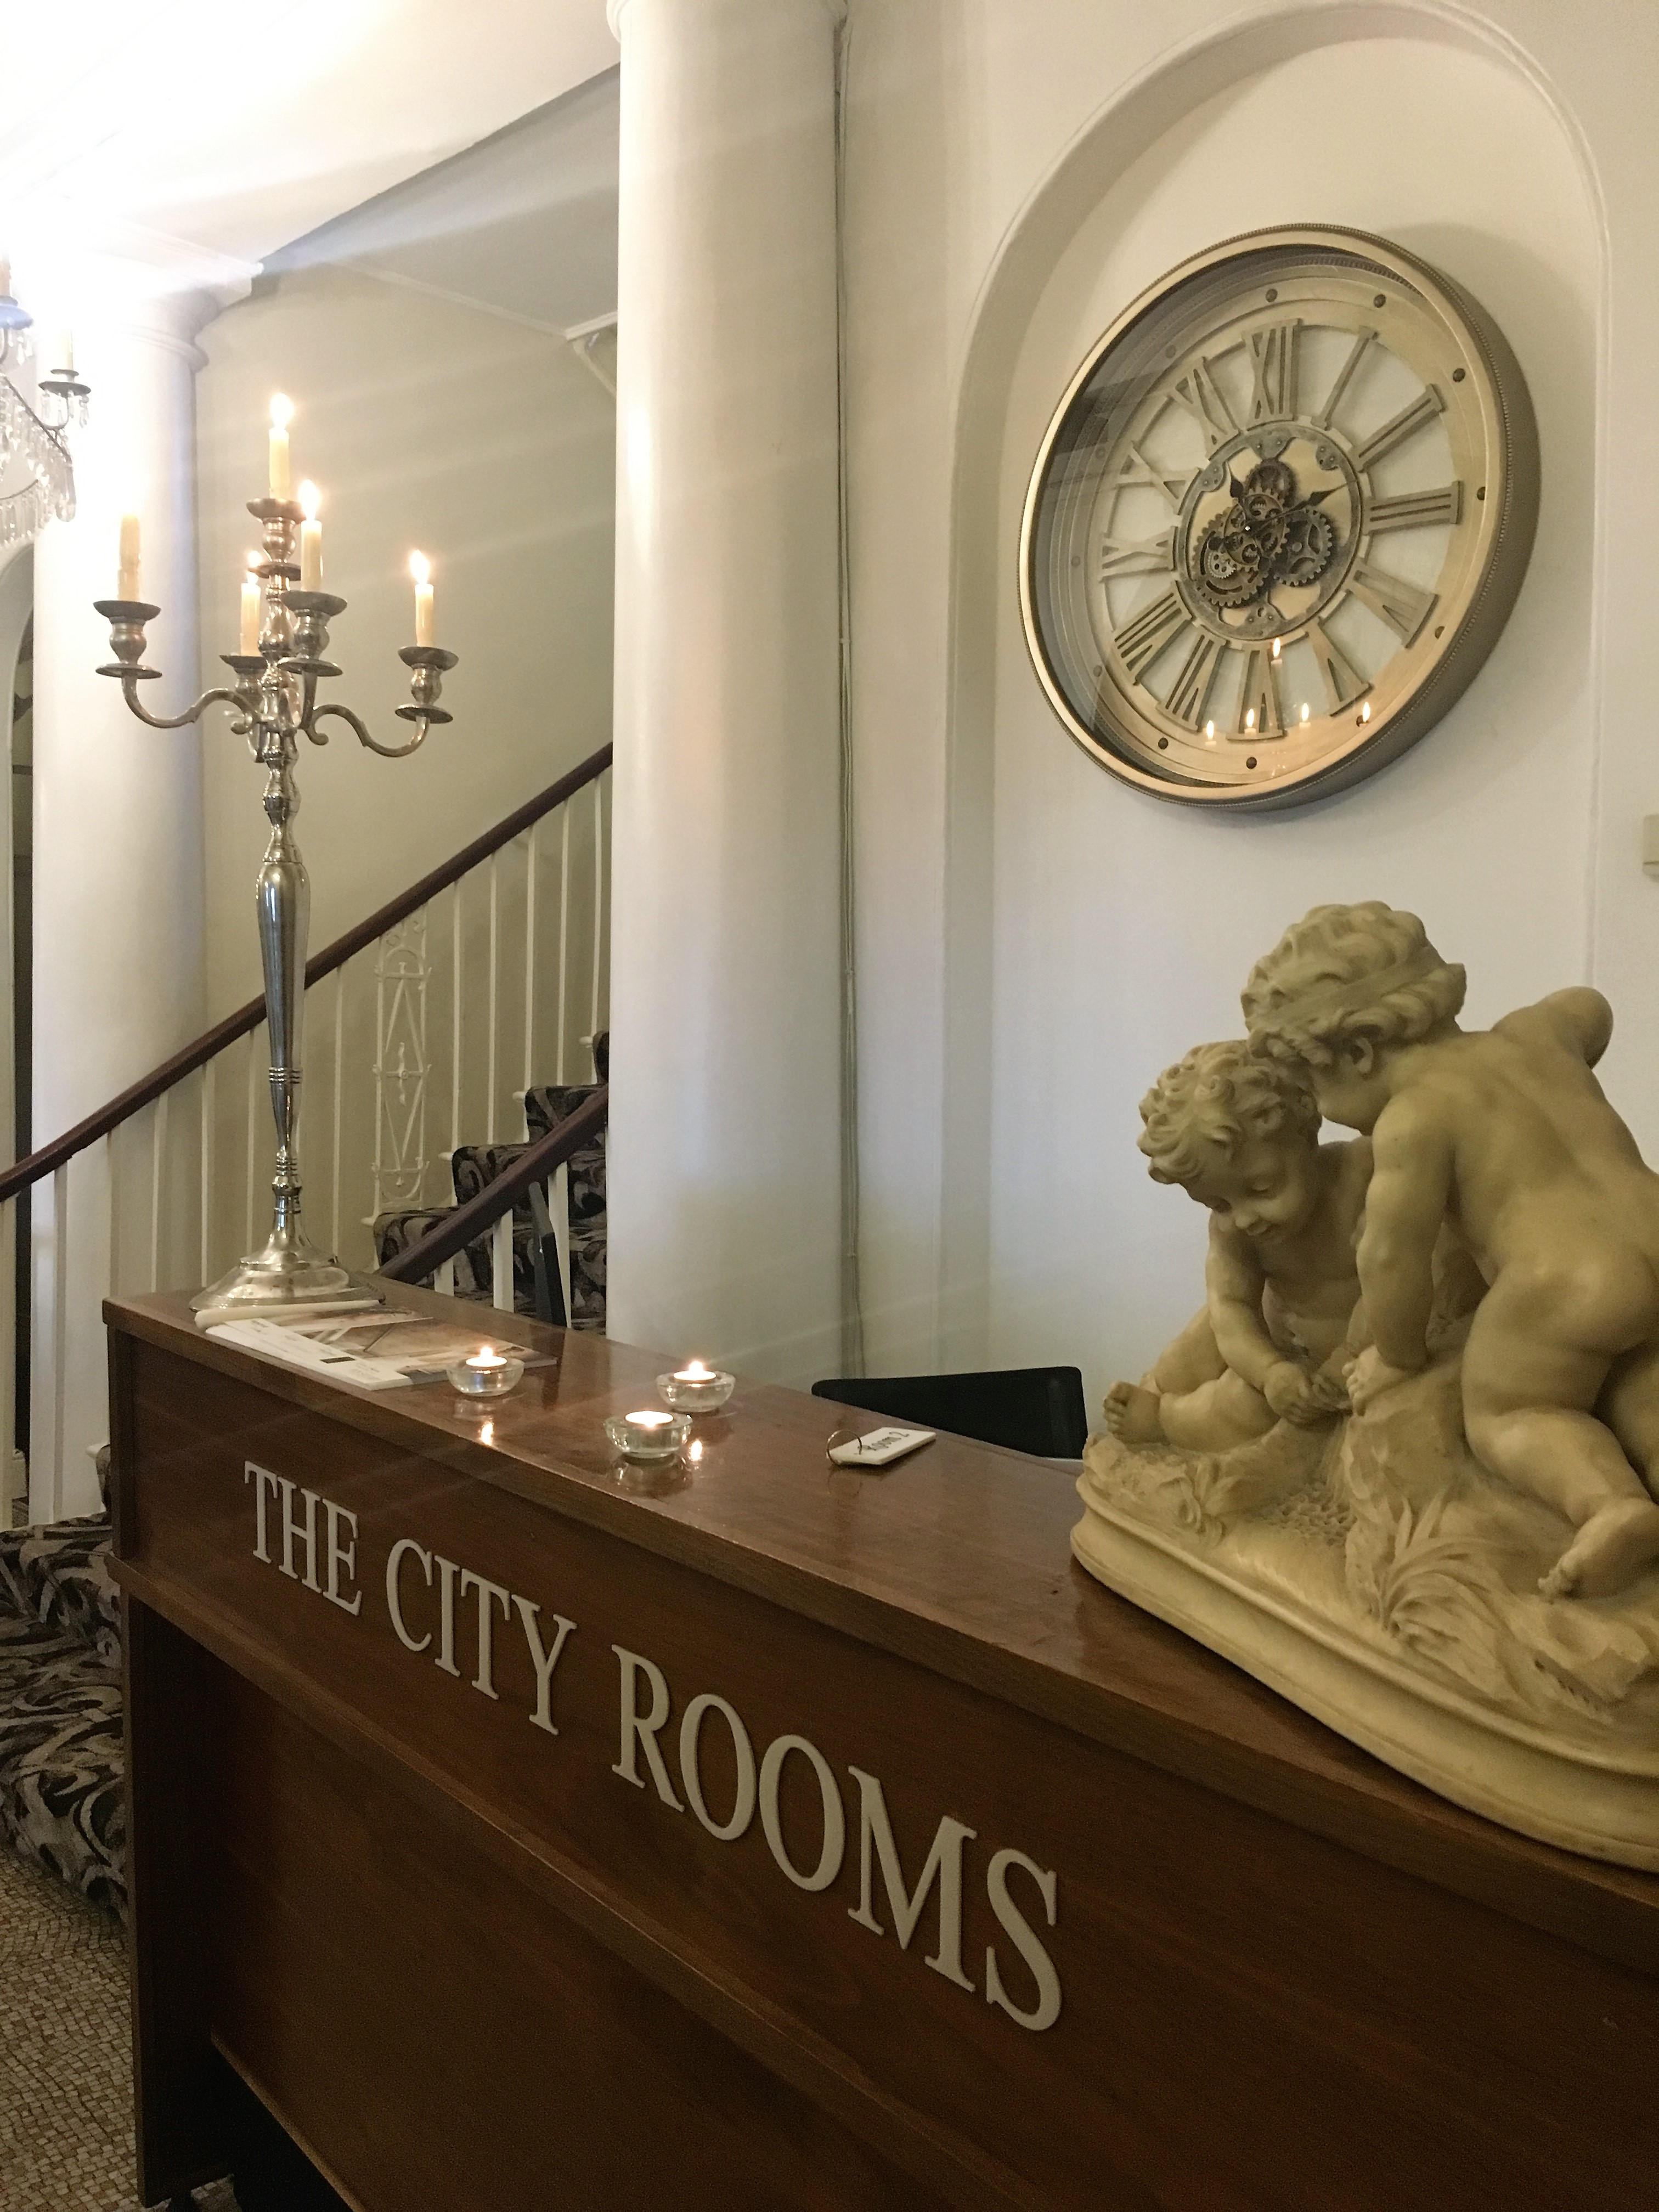 Indian Afternoon Tea at The City Rooms